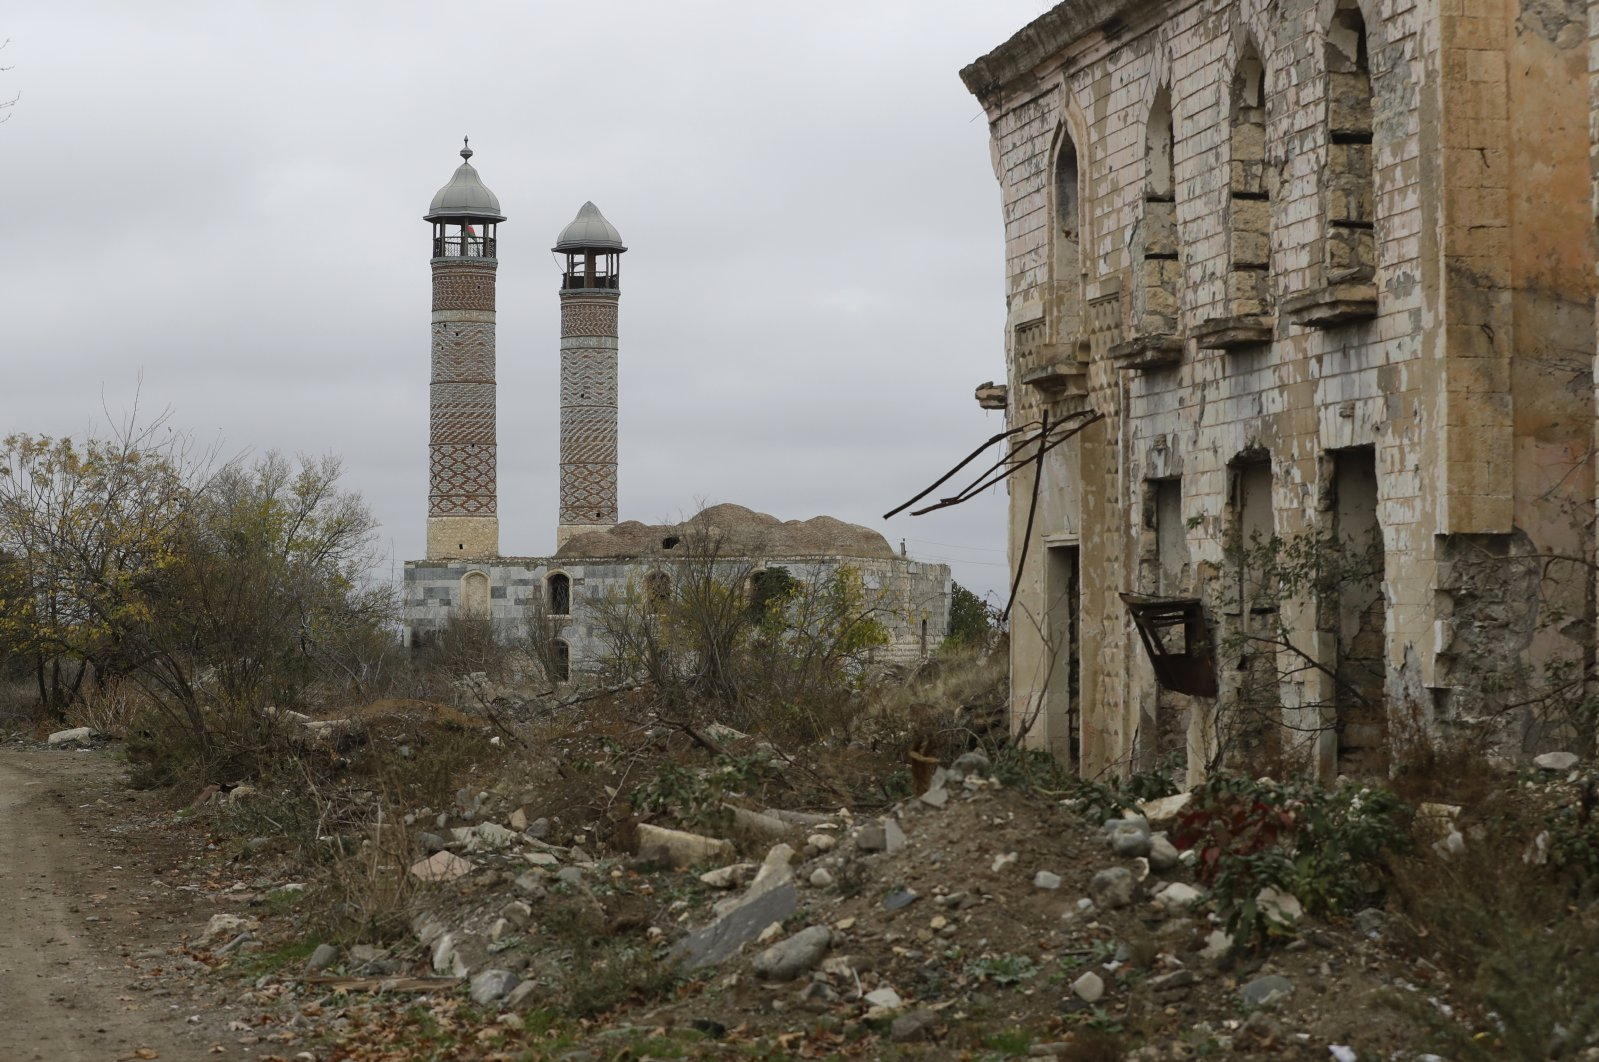 A view of a vast expanse of jagged concrete and houses reduced to shells in Aghdam, after the Azerbaijani forces took over control of the city, Aghdam, Azerbaijan, Nov. 20, 2020. (AP)